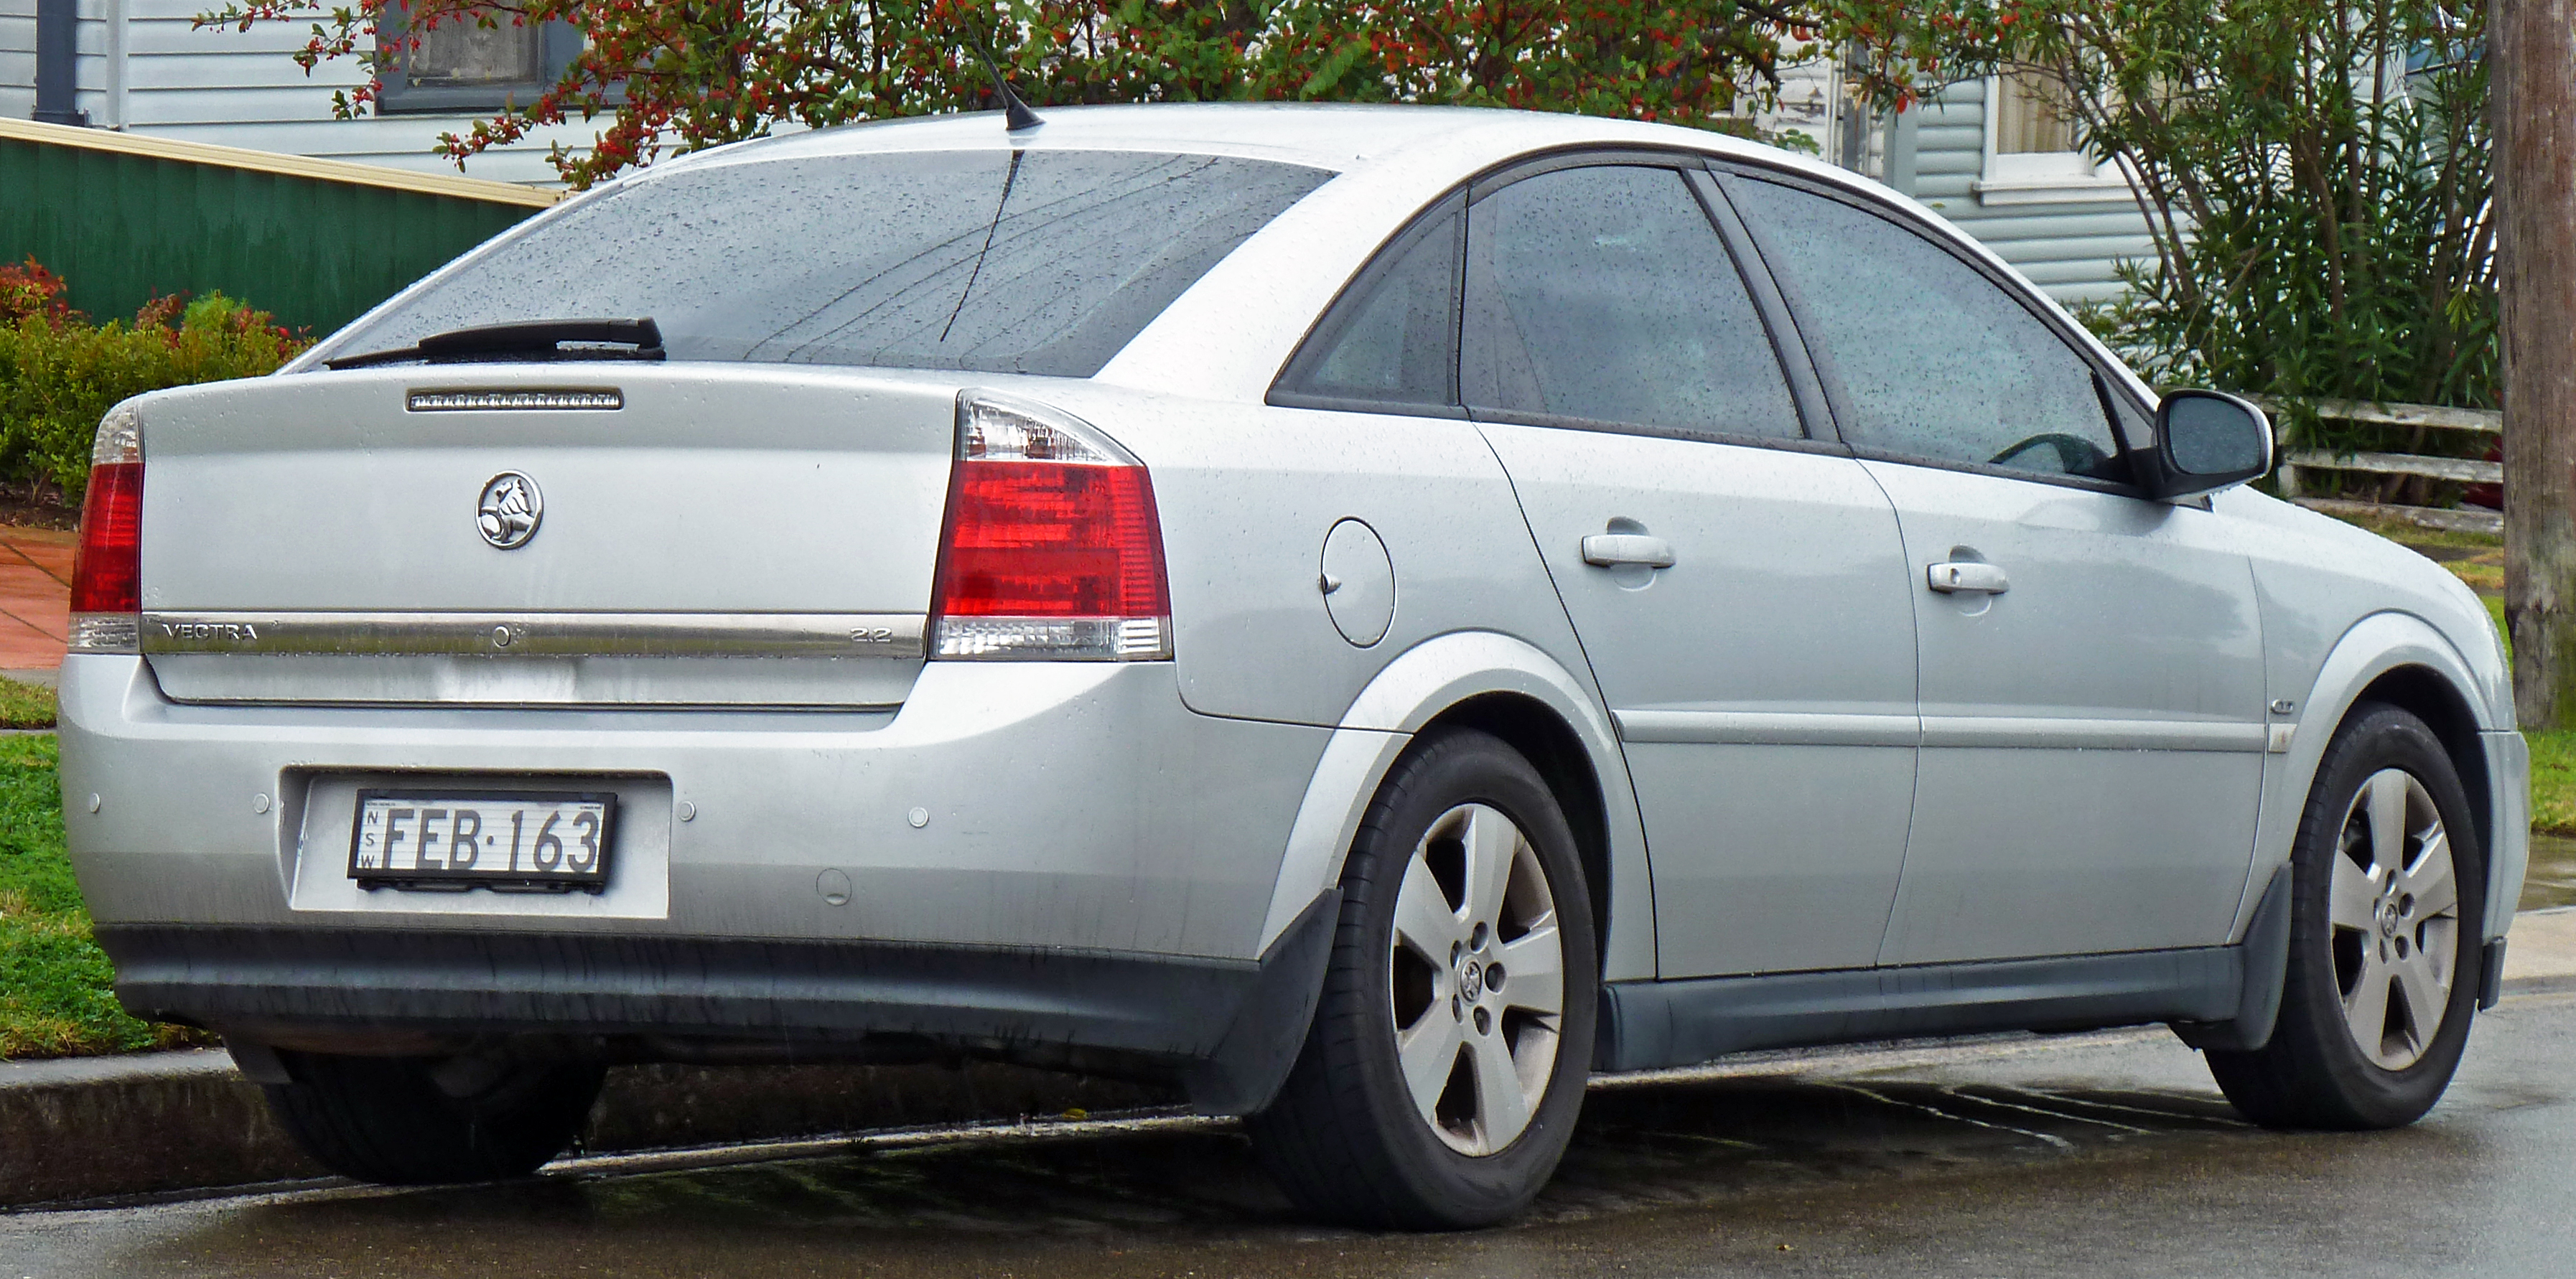 2005 Holden Vectra #7